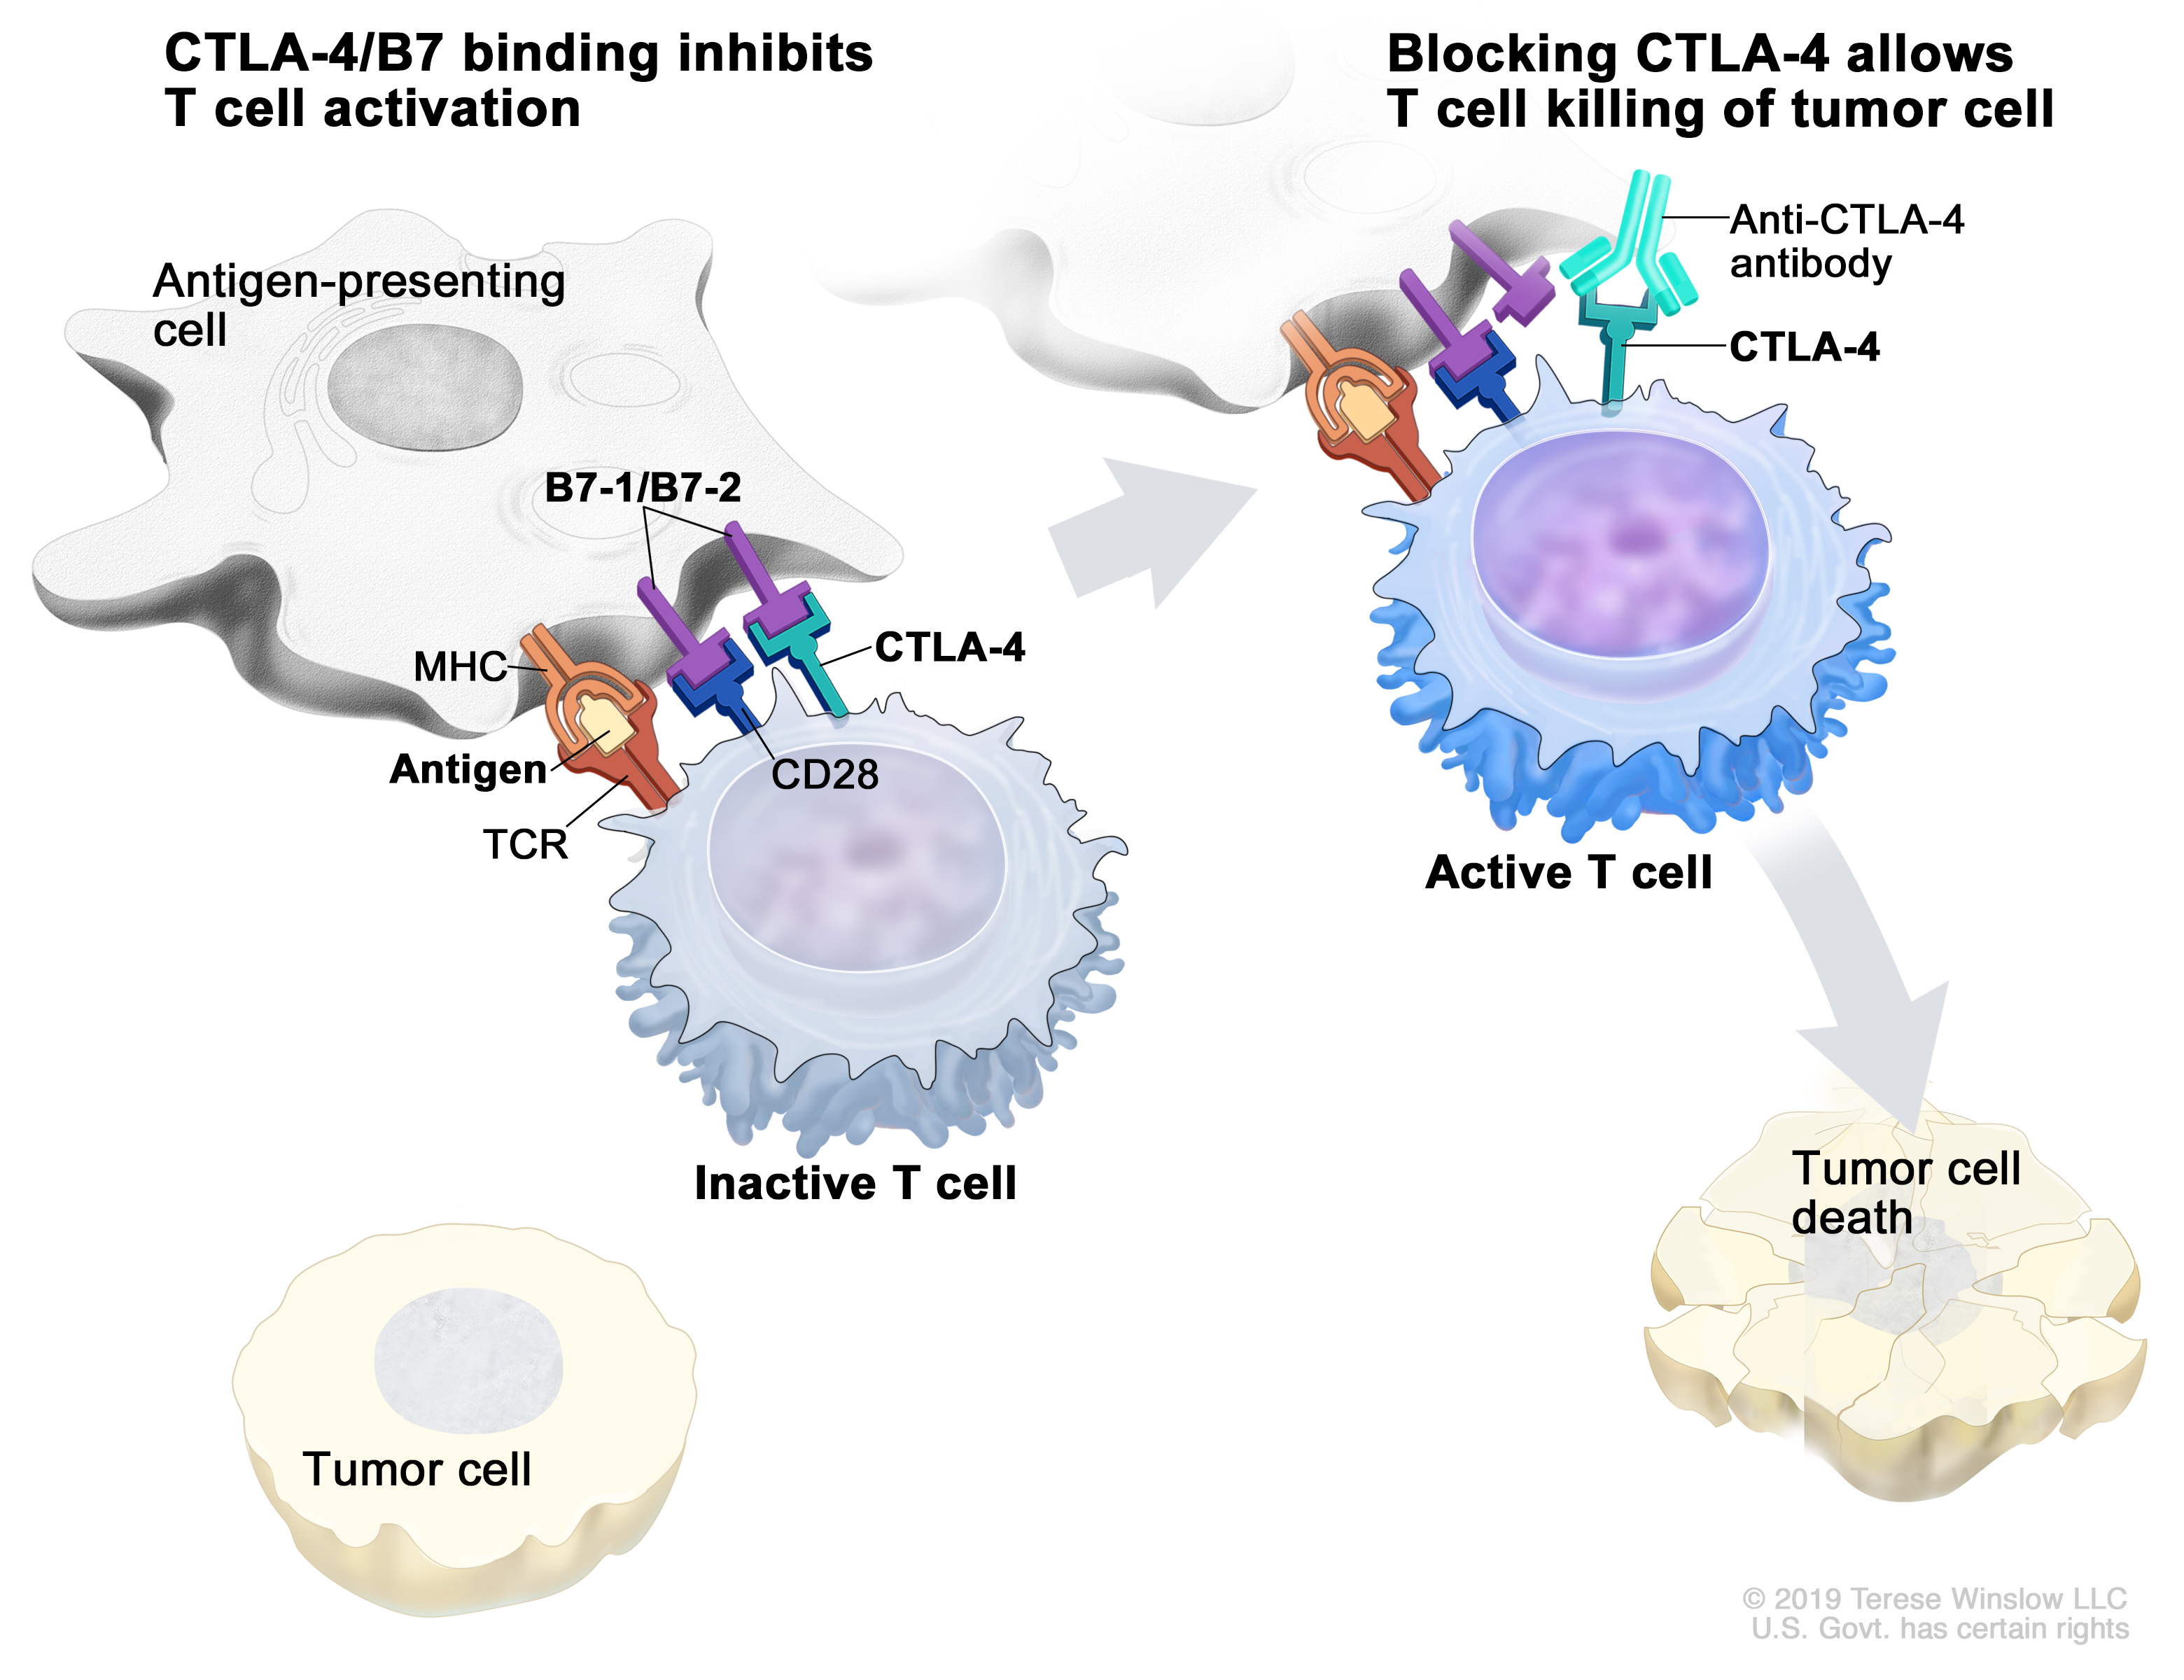 Immune checkpoint inhibitor; the panel on the left shows the binding of the T-cell receptor (TCR) to antigen and MHC proteins on the antigen-presenting cell (APC) and the  binding of CD28 on the T cell to B7-1/B7-2 on the APC. It also shows the binding of B7-1/B7-2 to CTLA-4 on the T cell, which keeps the T cells in the inactive state. The panel on the right shows immune checkpoint inhibitor (anti-CTLA antibody) blocking the binding of B7-1/B7-2 to CTLA-4, which allows the T cells to be active and to kill tumor cells.